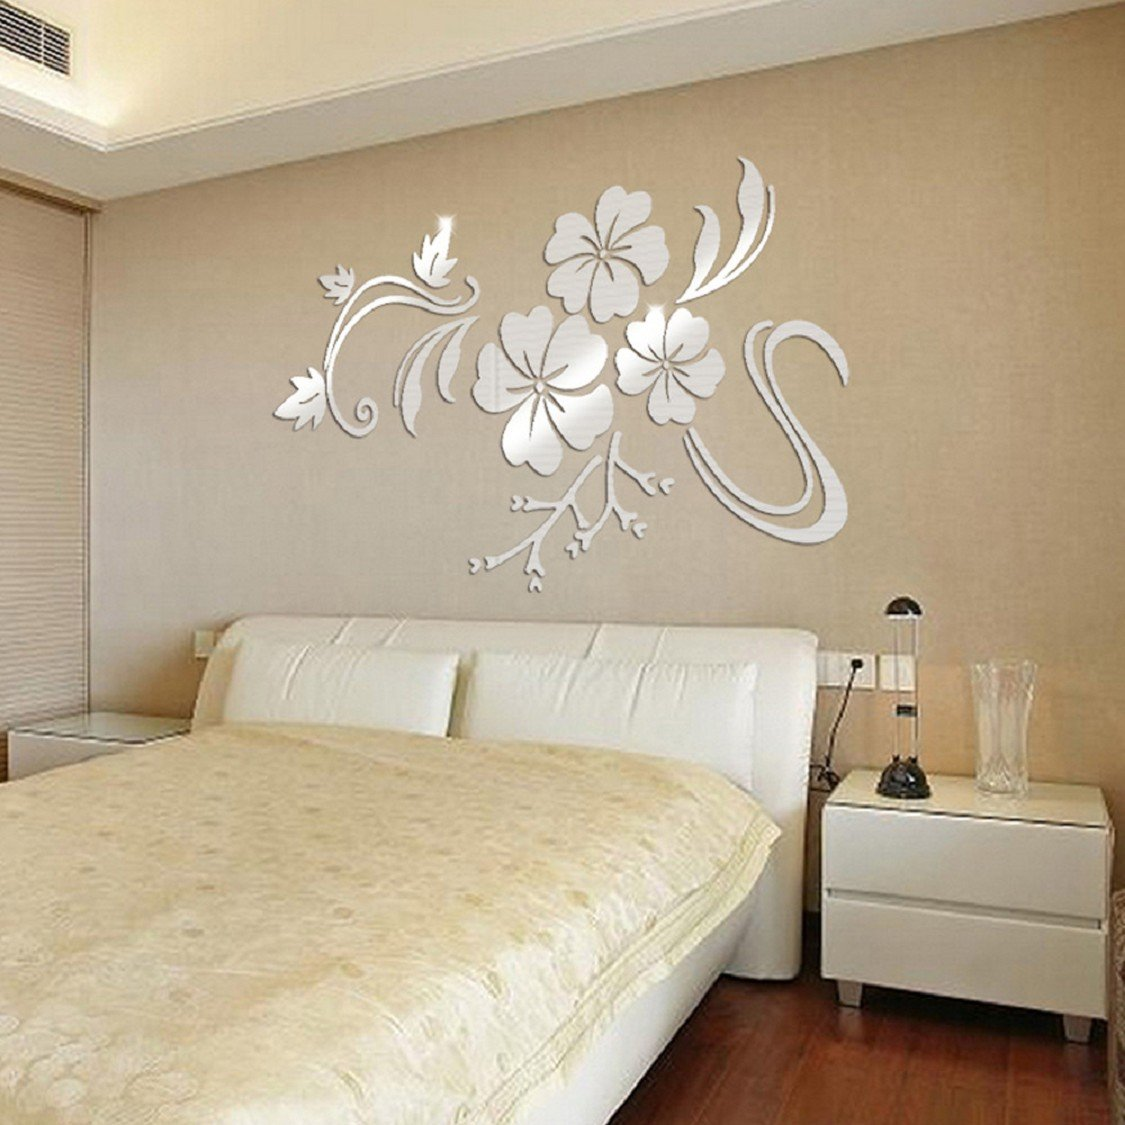 Amazing Ikevan 1Set Acrylic Art 3D Mirror Flower Wall Stickers DIY Home Wall Room  Decals Decor Sofa TV Setting Wall Removable Wall Stickers 78X60cm (Sliver)  ...